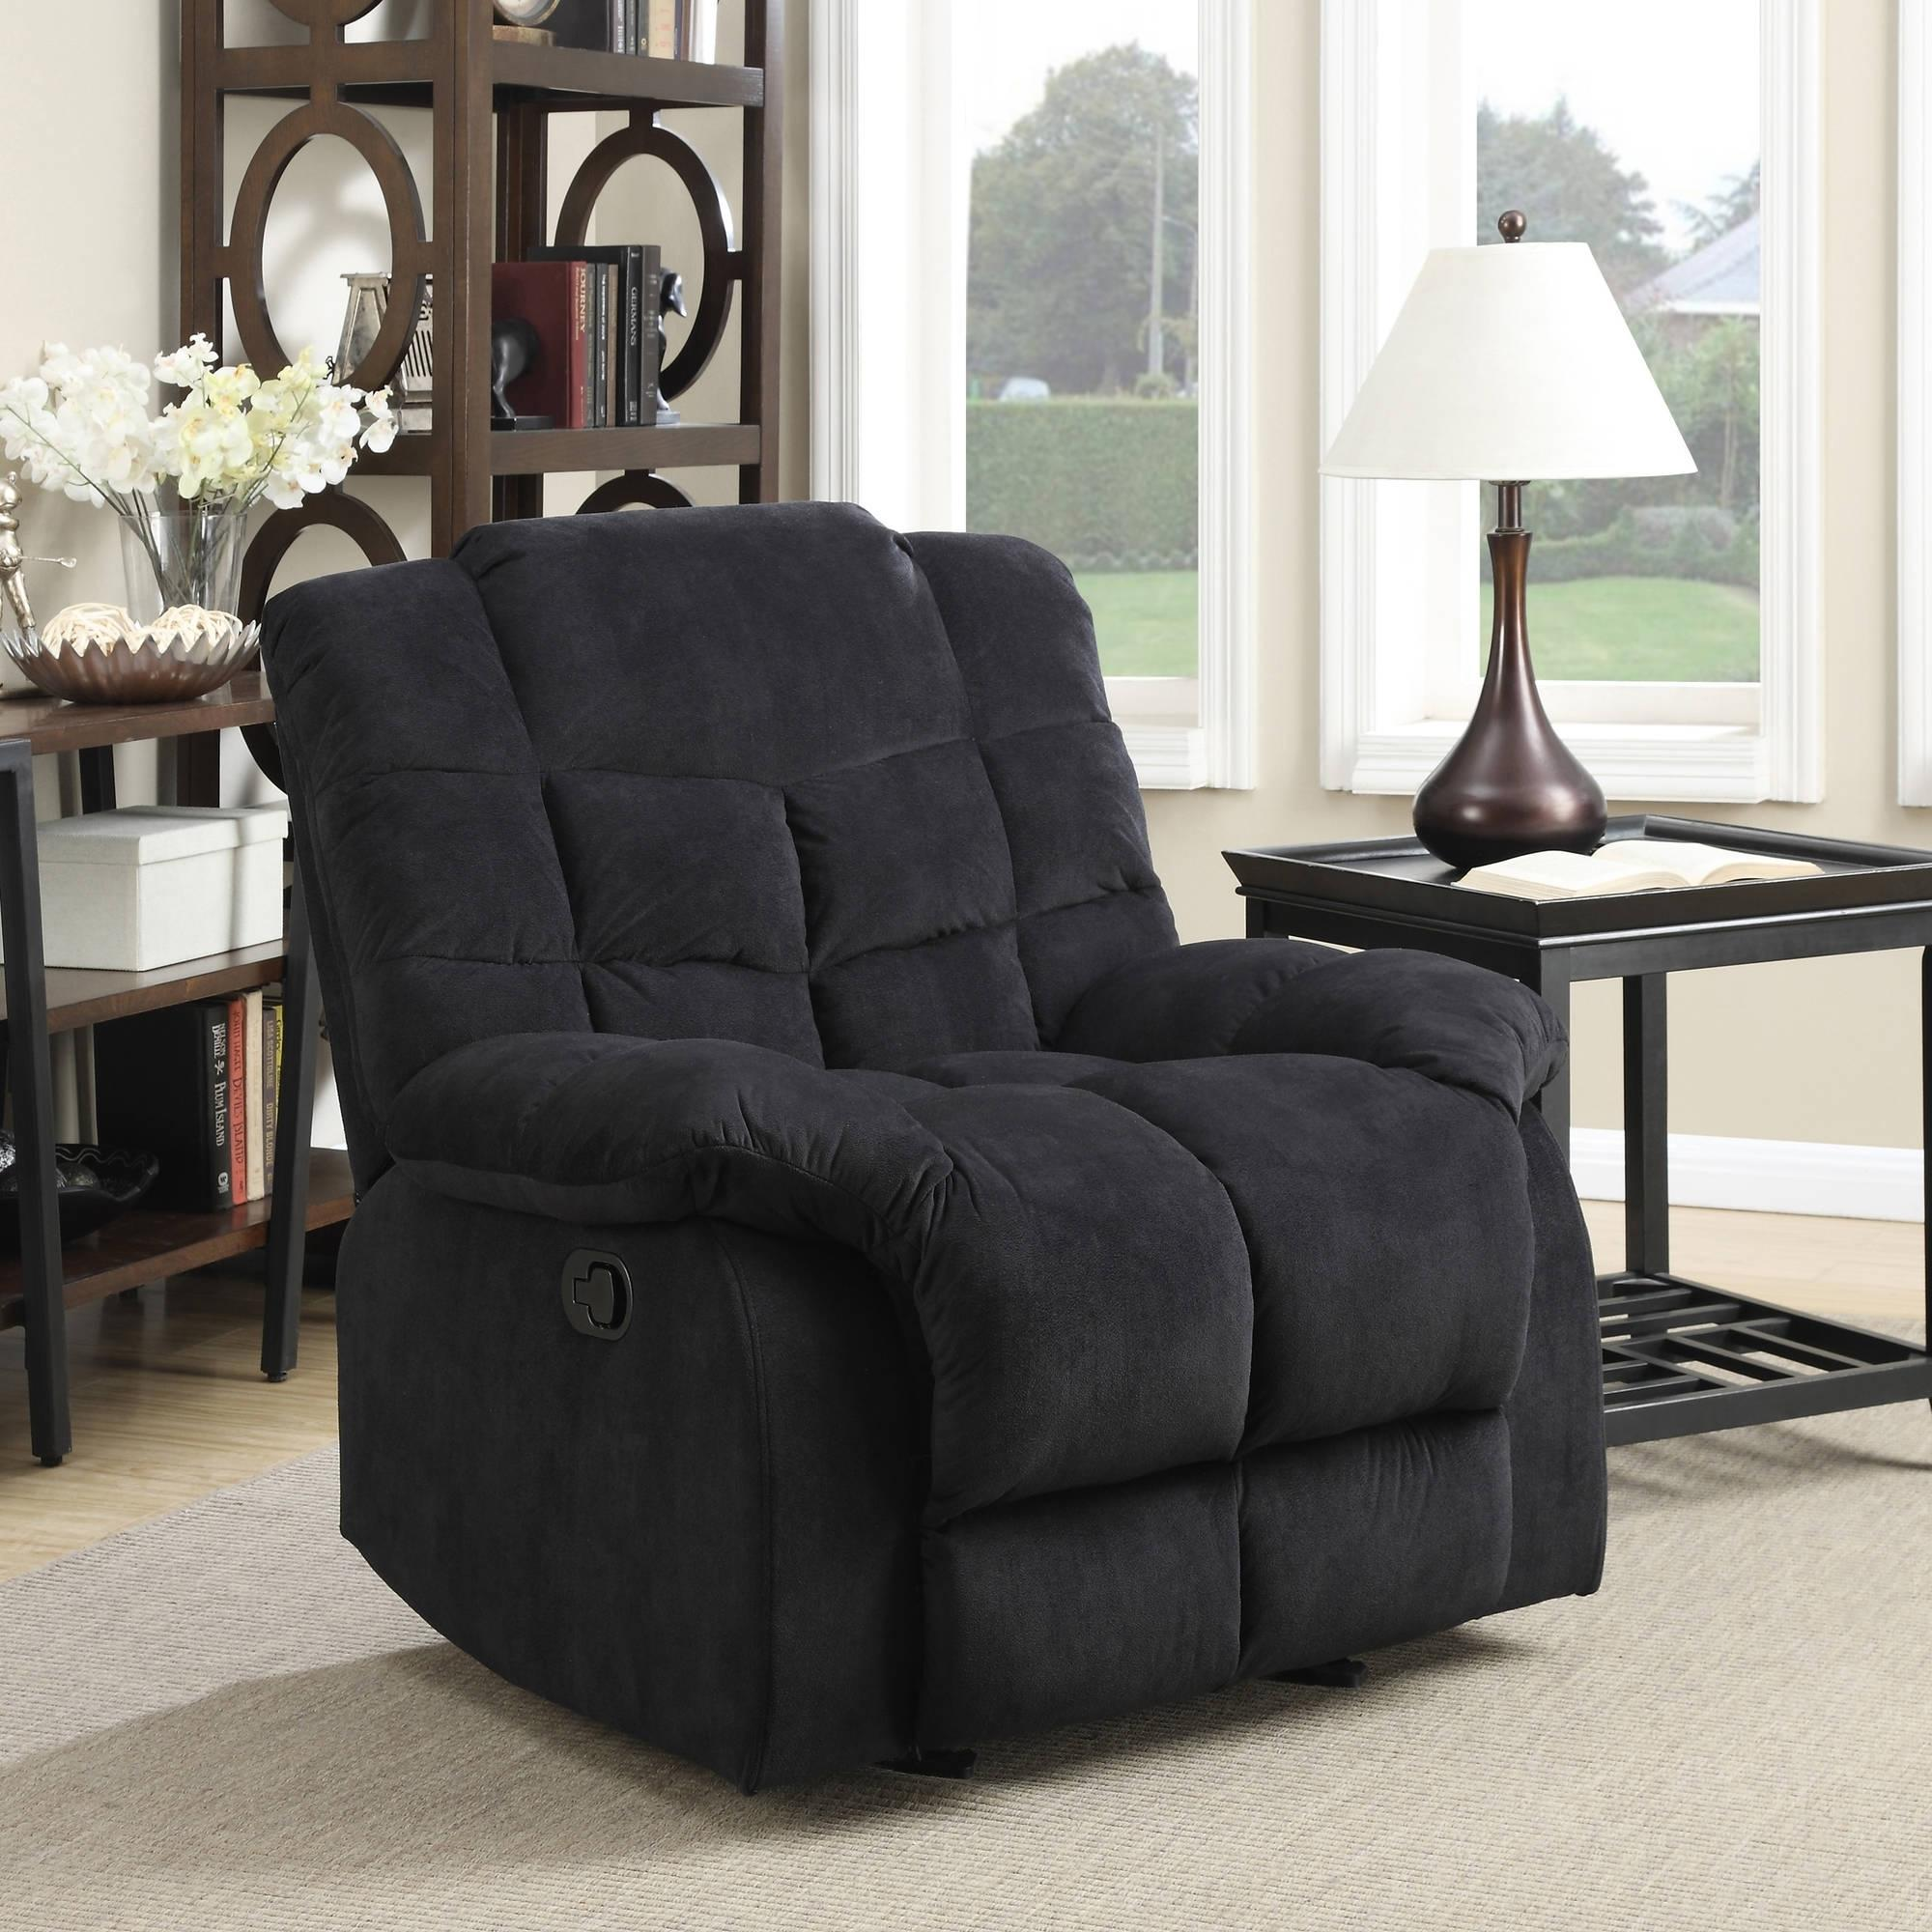 Excellent How To Repair A Recliner Tips And Tricks From Spiritservingveterans Wood Chair Design Ideas Spiritservingveteransorg